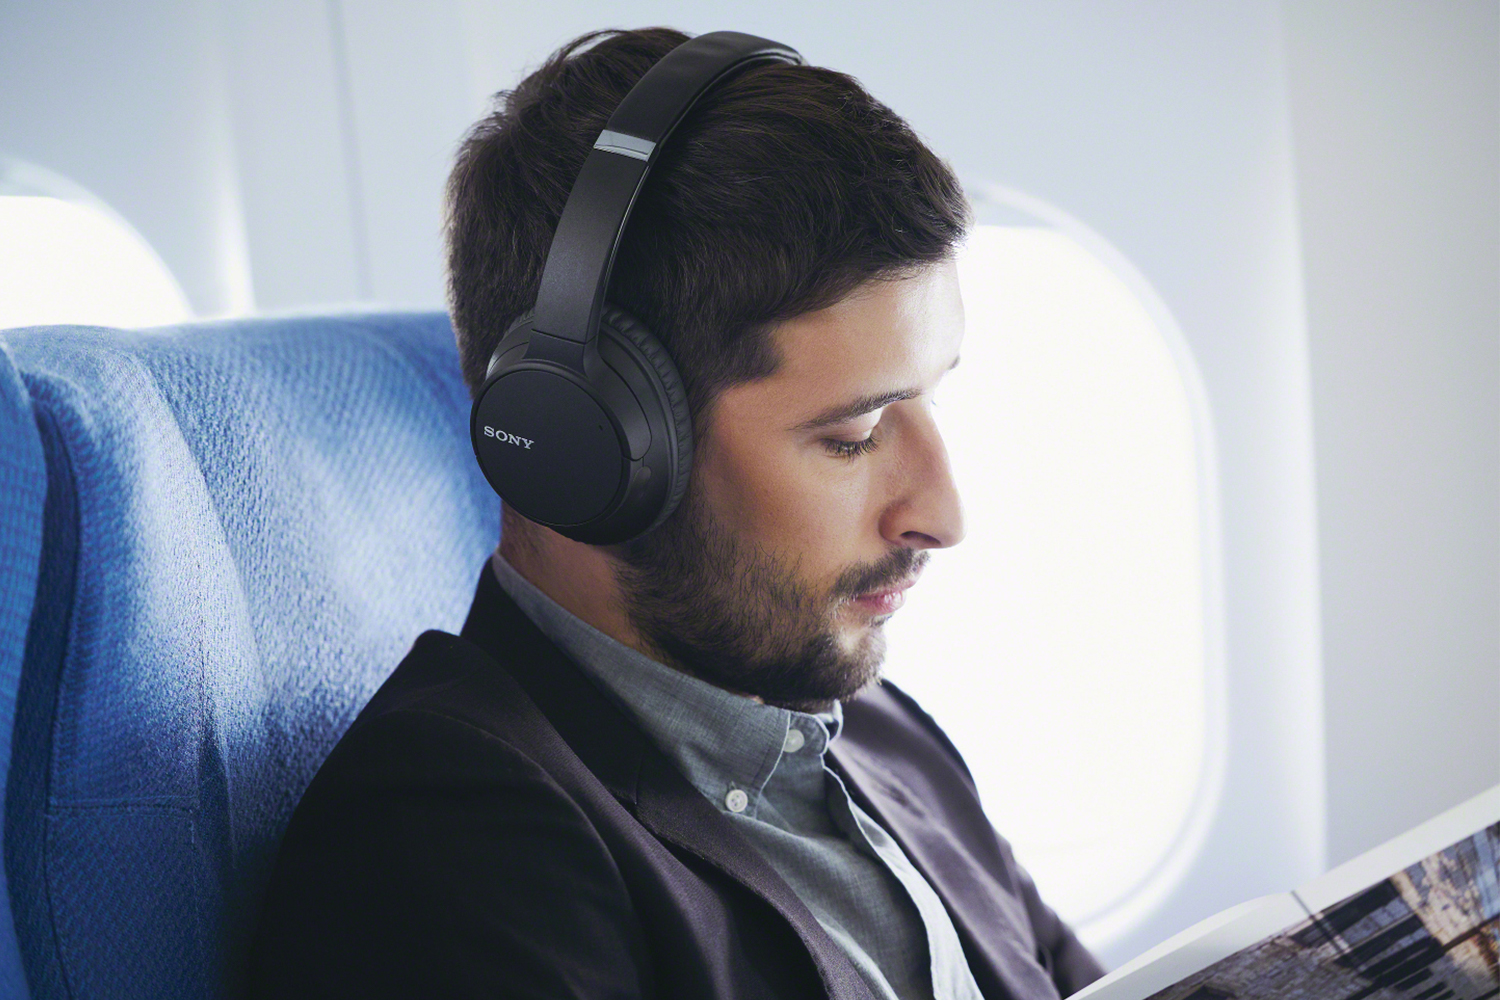 Sony WH-CH700N Wireless Noise-Canceling Over-Ear Headphones Sale